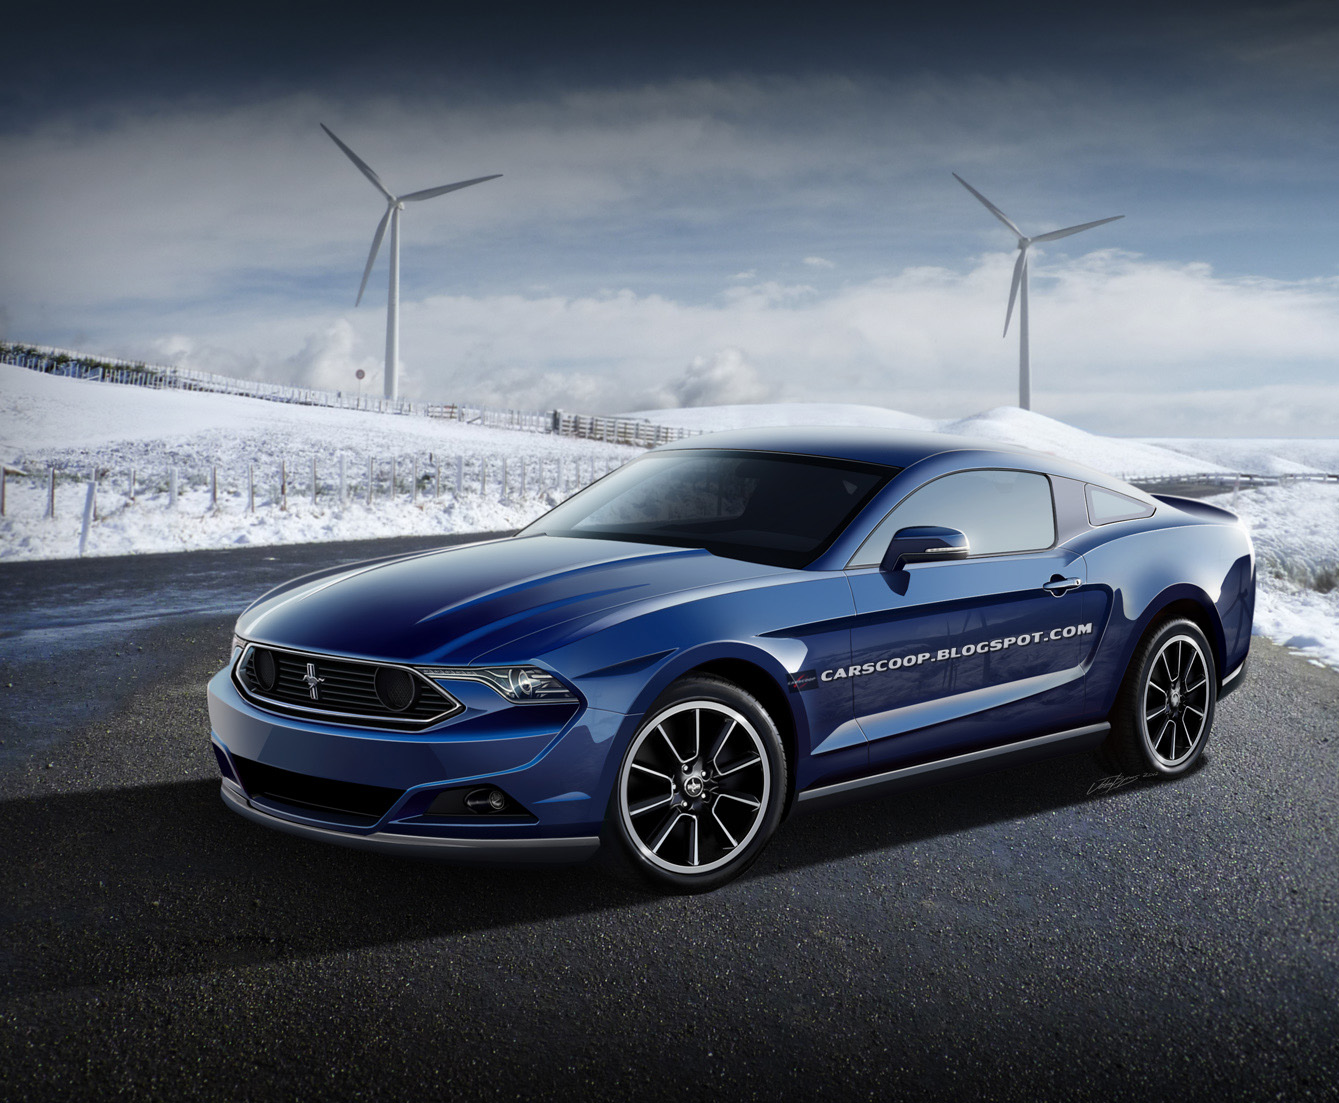 2015-Ford-Mustang-GT-Concept-Design.jpg